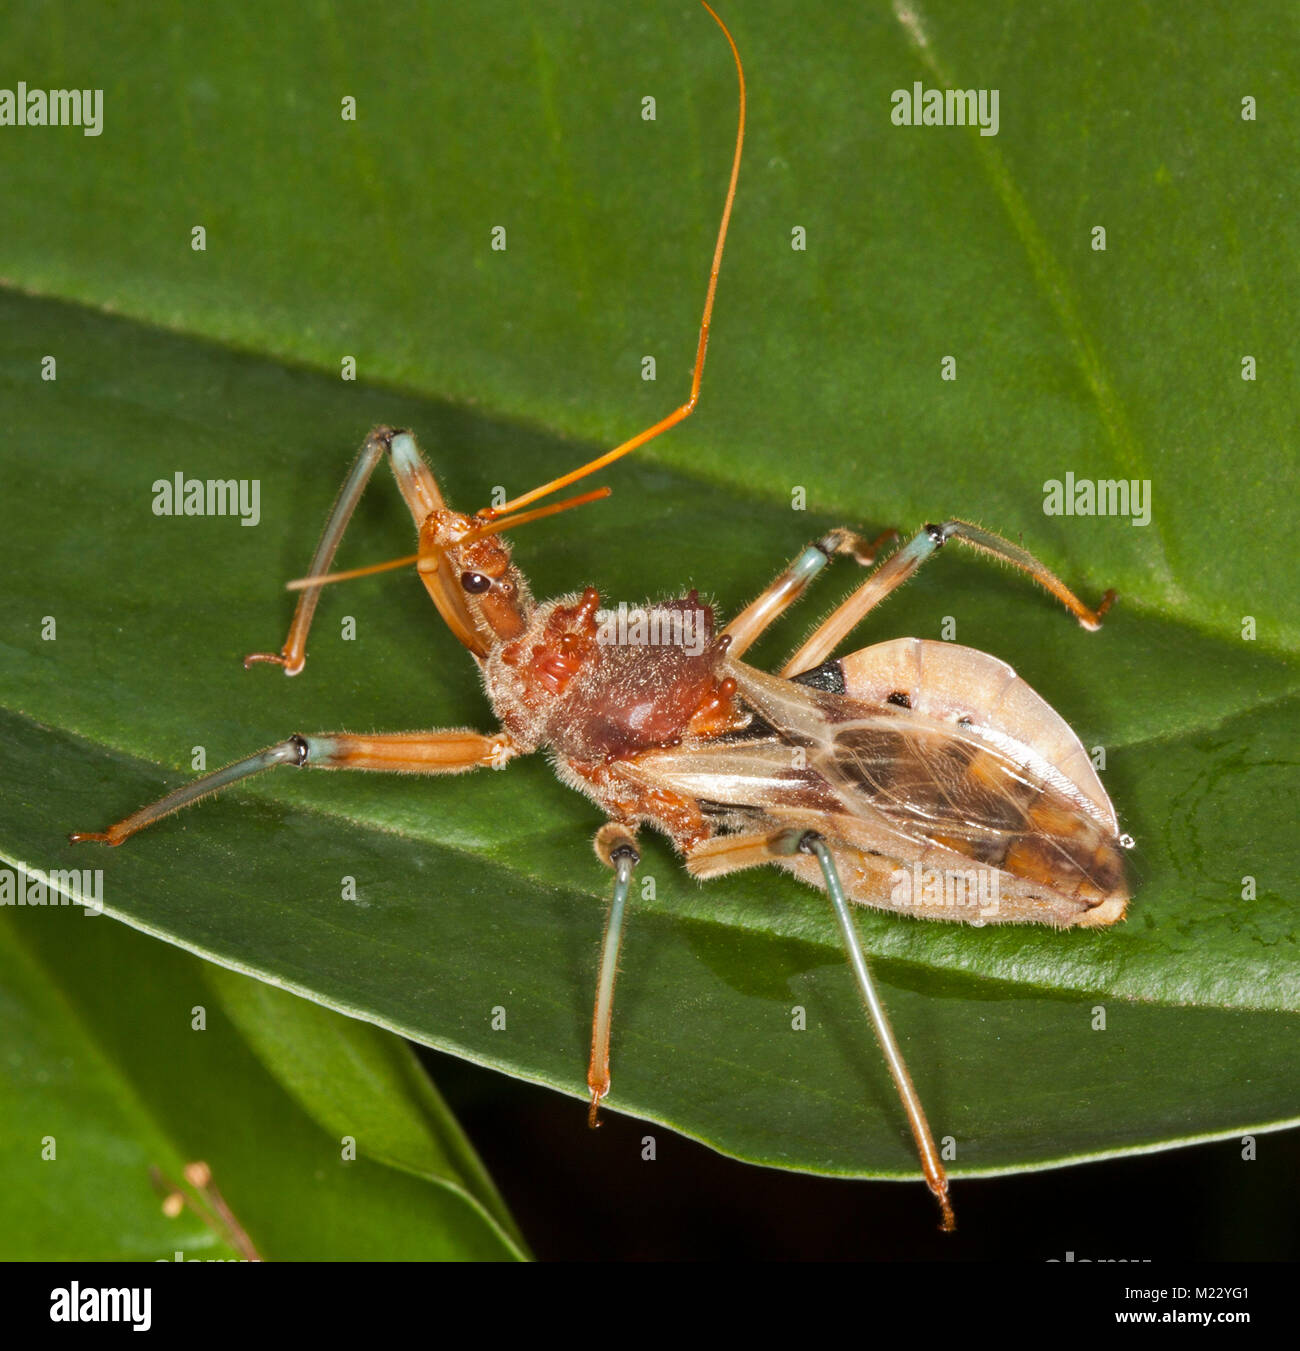 Golden brown Assassin bug, Pristhecanthus plagipennis, Australian beneficial predatory insect on green leaf - Stock Image